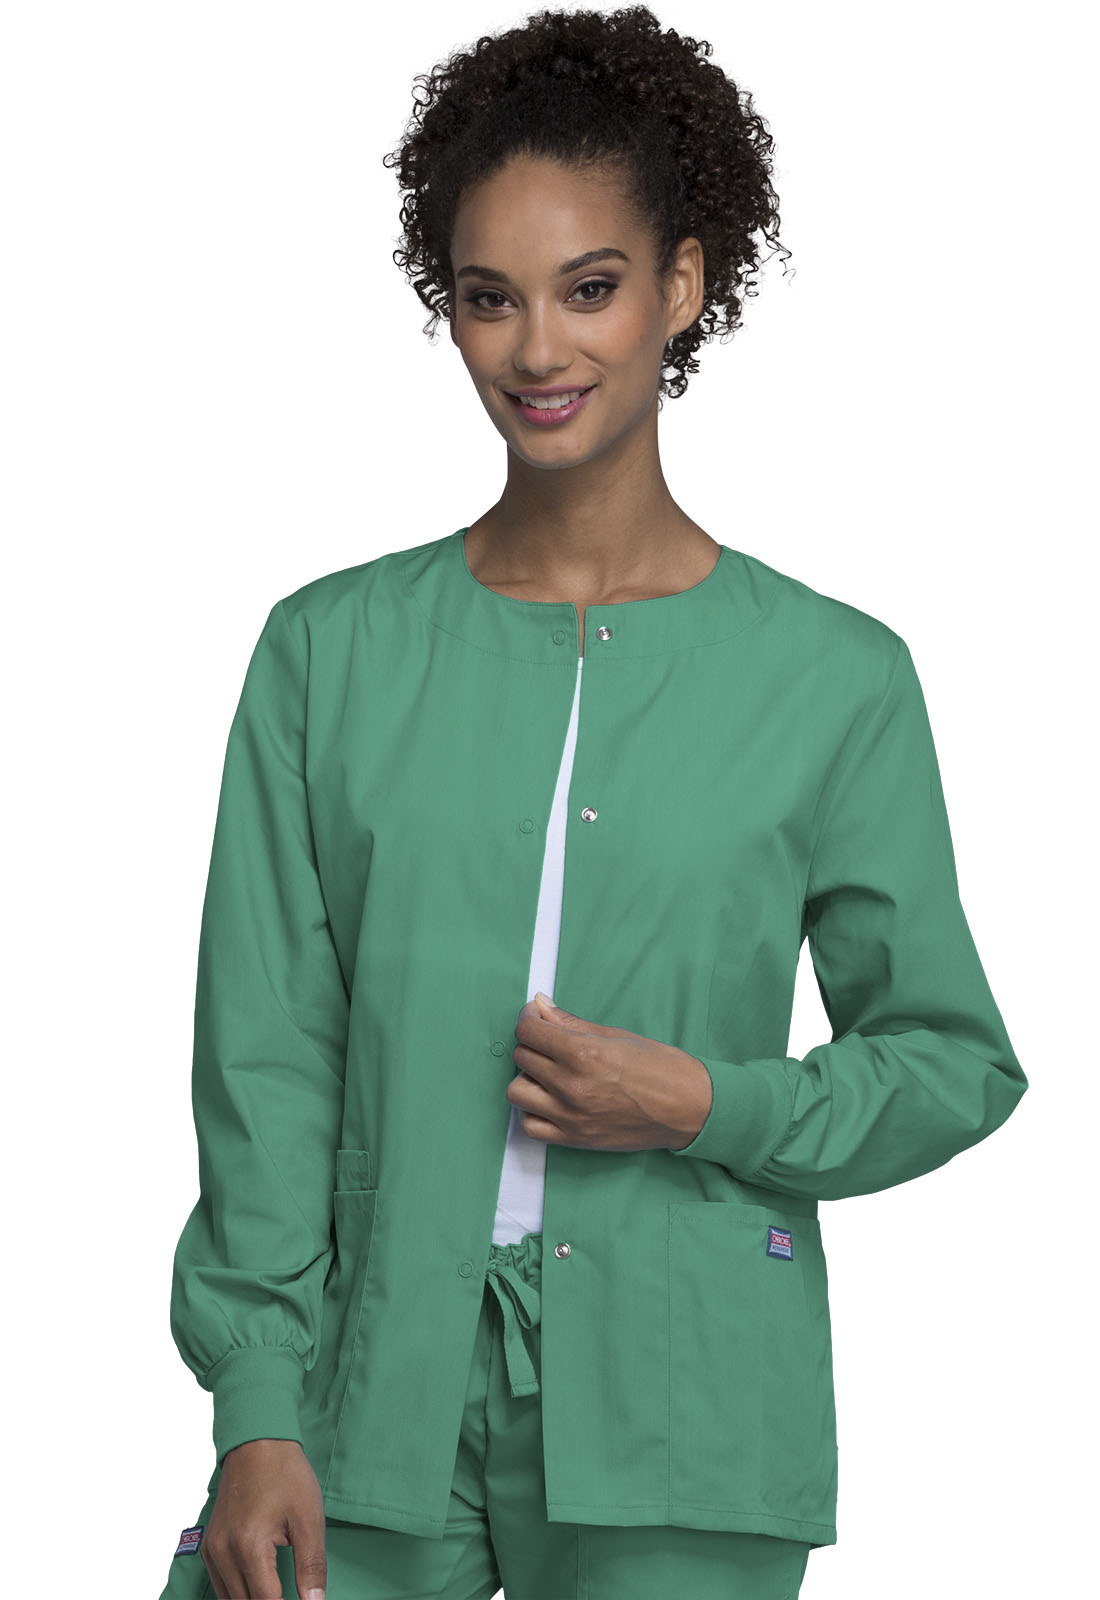 d123822e1b7 WW Originals Snap Front Warm-Up Jacket in Surgical Green 4350-SGRW ...